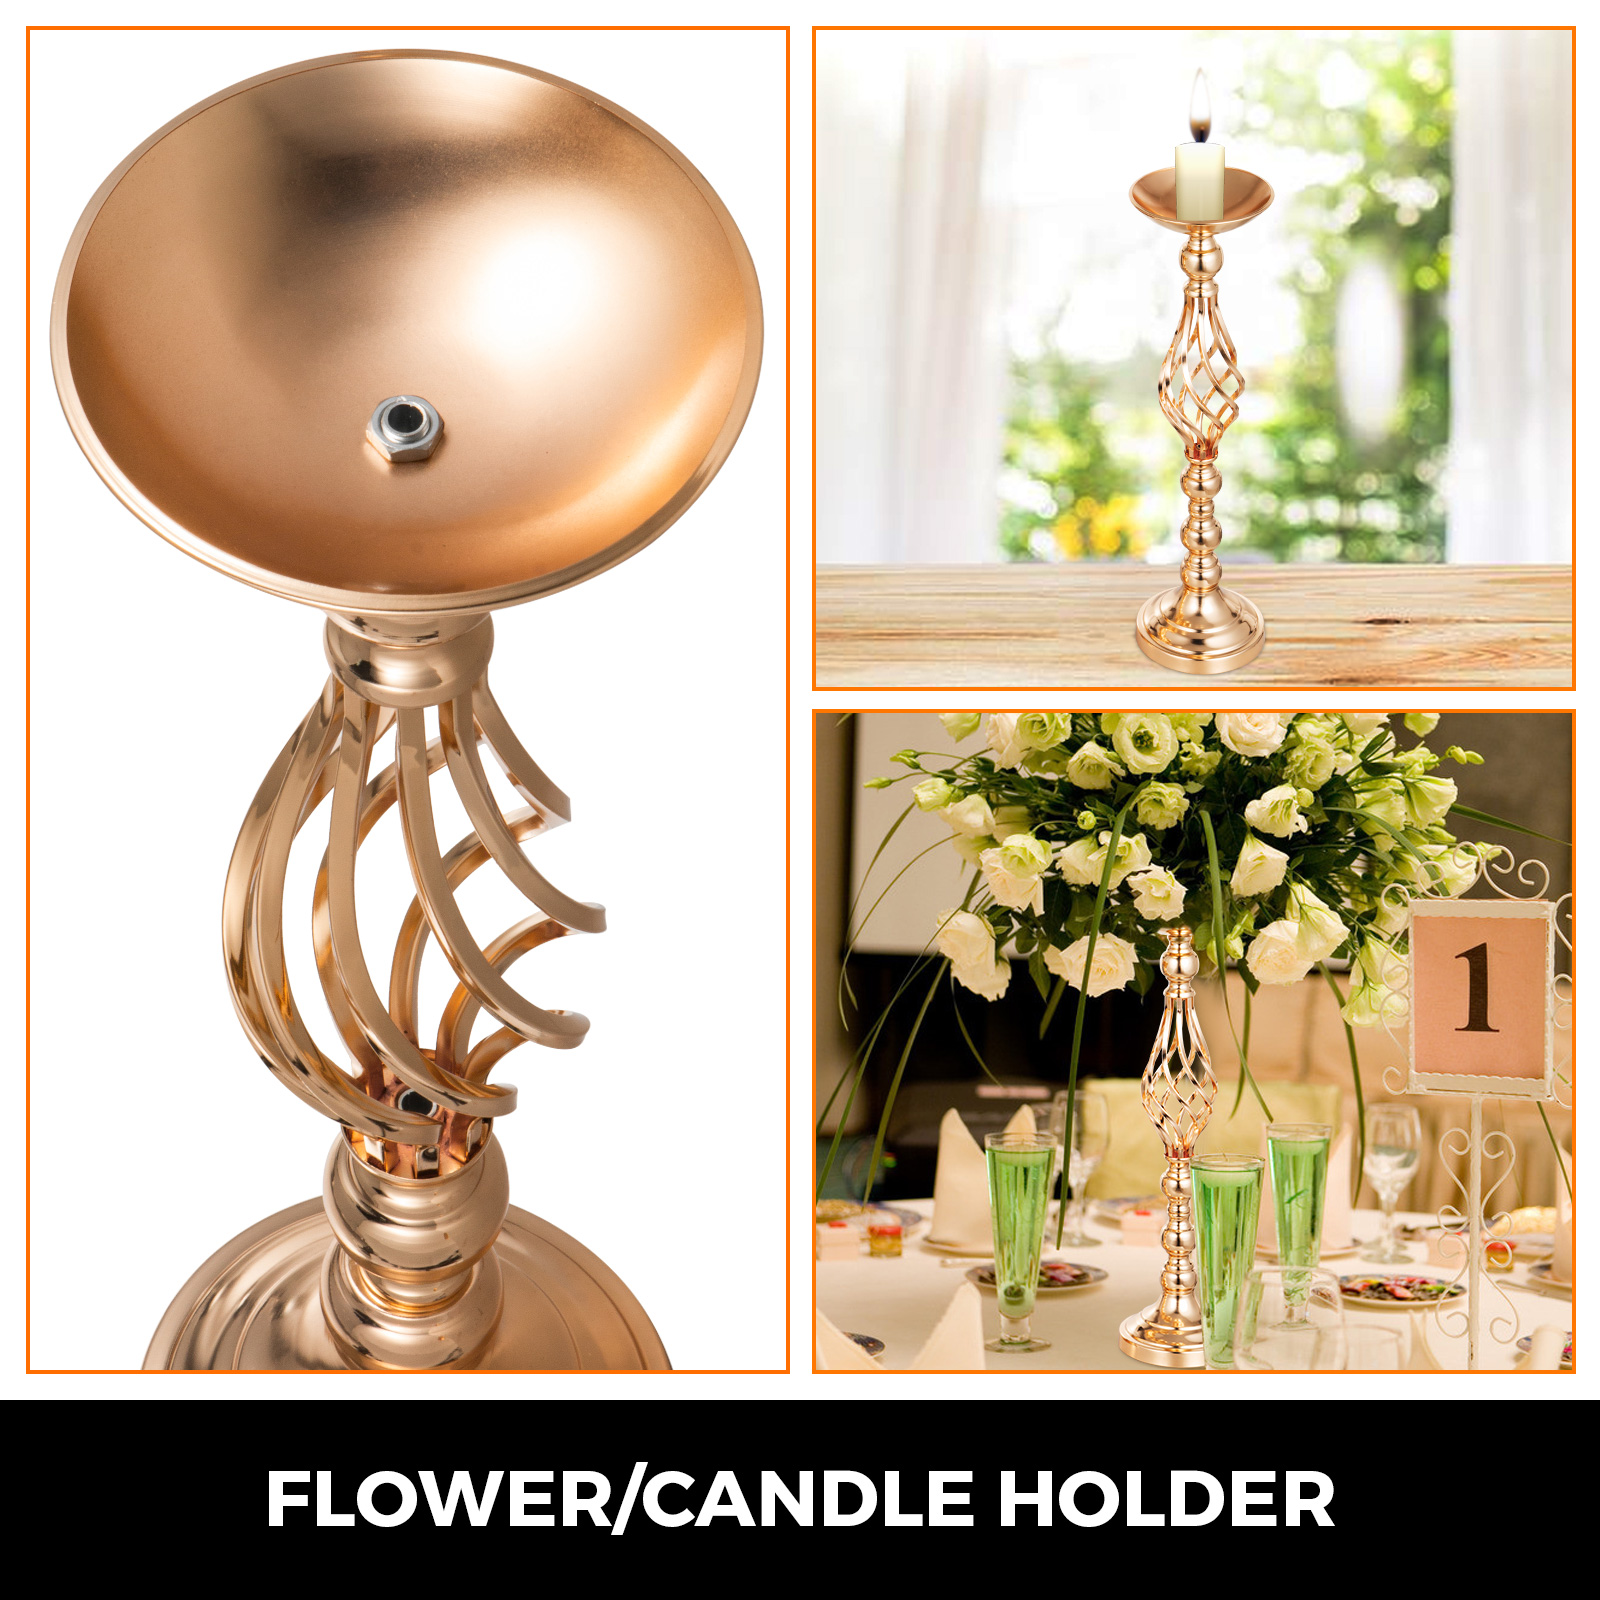 Flower-Rack-for-Wedding-Metal-Candle-Stand-4-11pcs-Centerpiece-Flower-Vase thumbnail 51